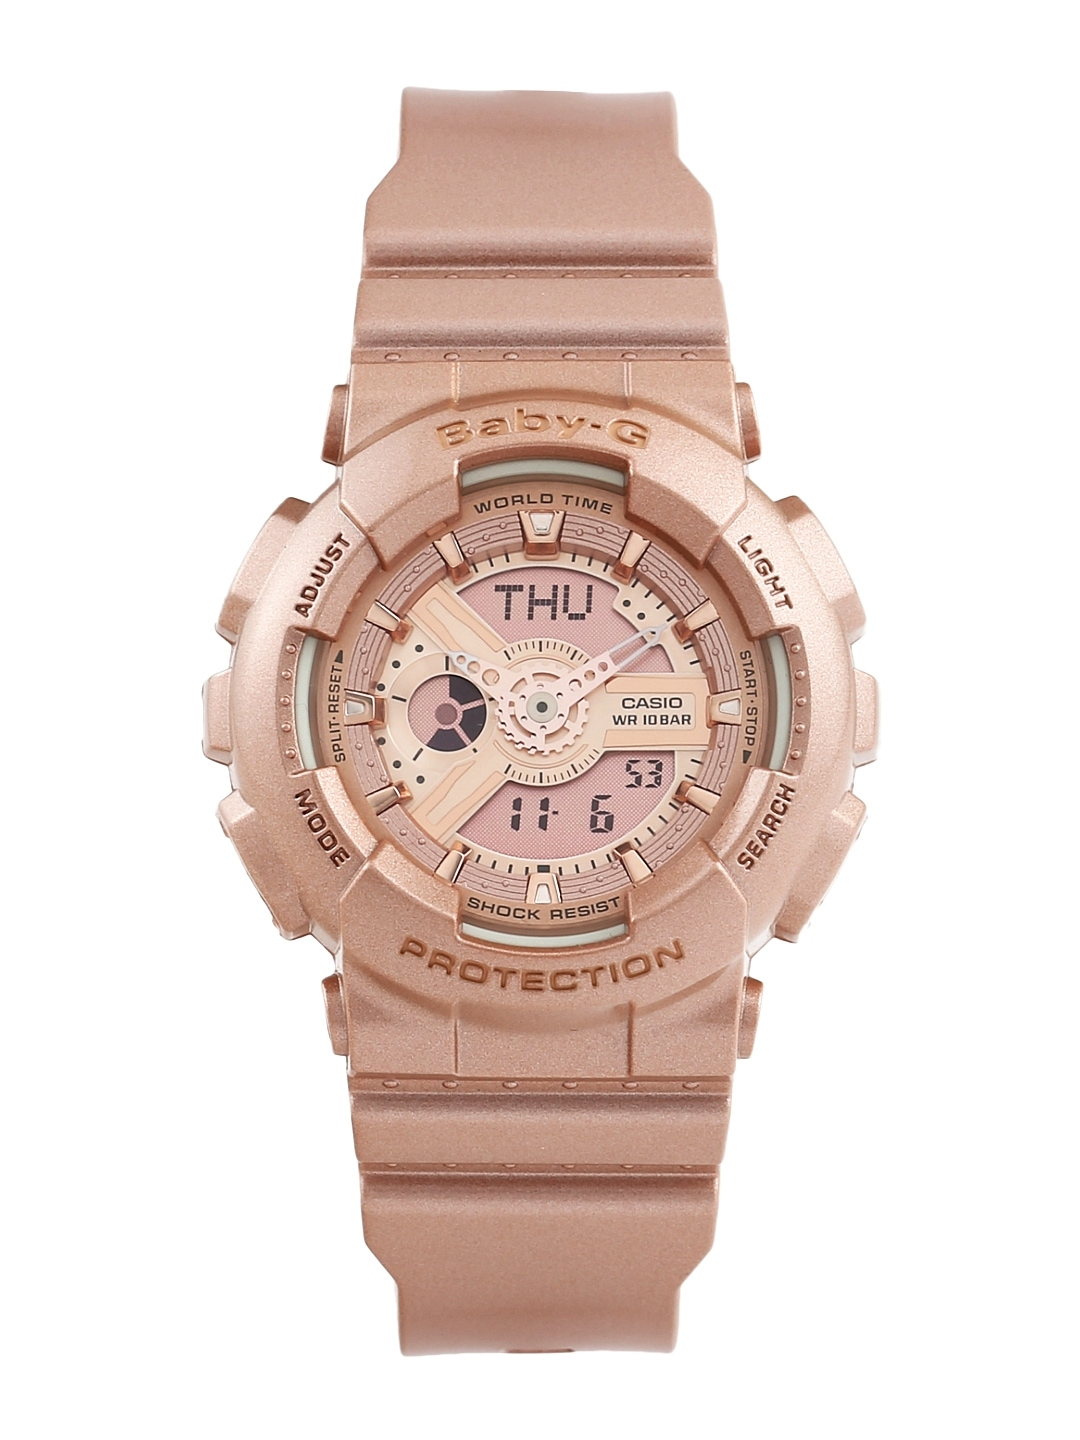 Myntra Casio Babyg Women Peachcoloured Analogue. Gold Filled Earrings. Bracelets Beads. Compass Rose Pendant. Channel Watches. Transparent Watches. Engraved Bracelet. Goldstone Earrings. Leo Diamond Rings